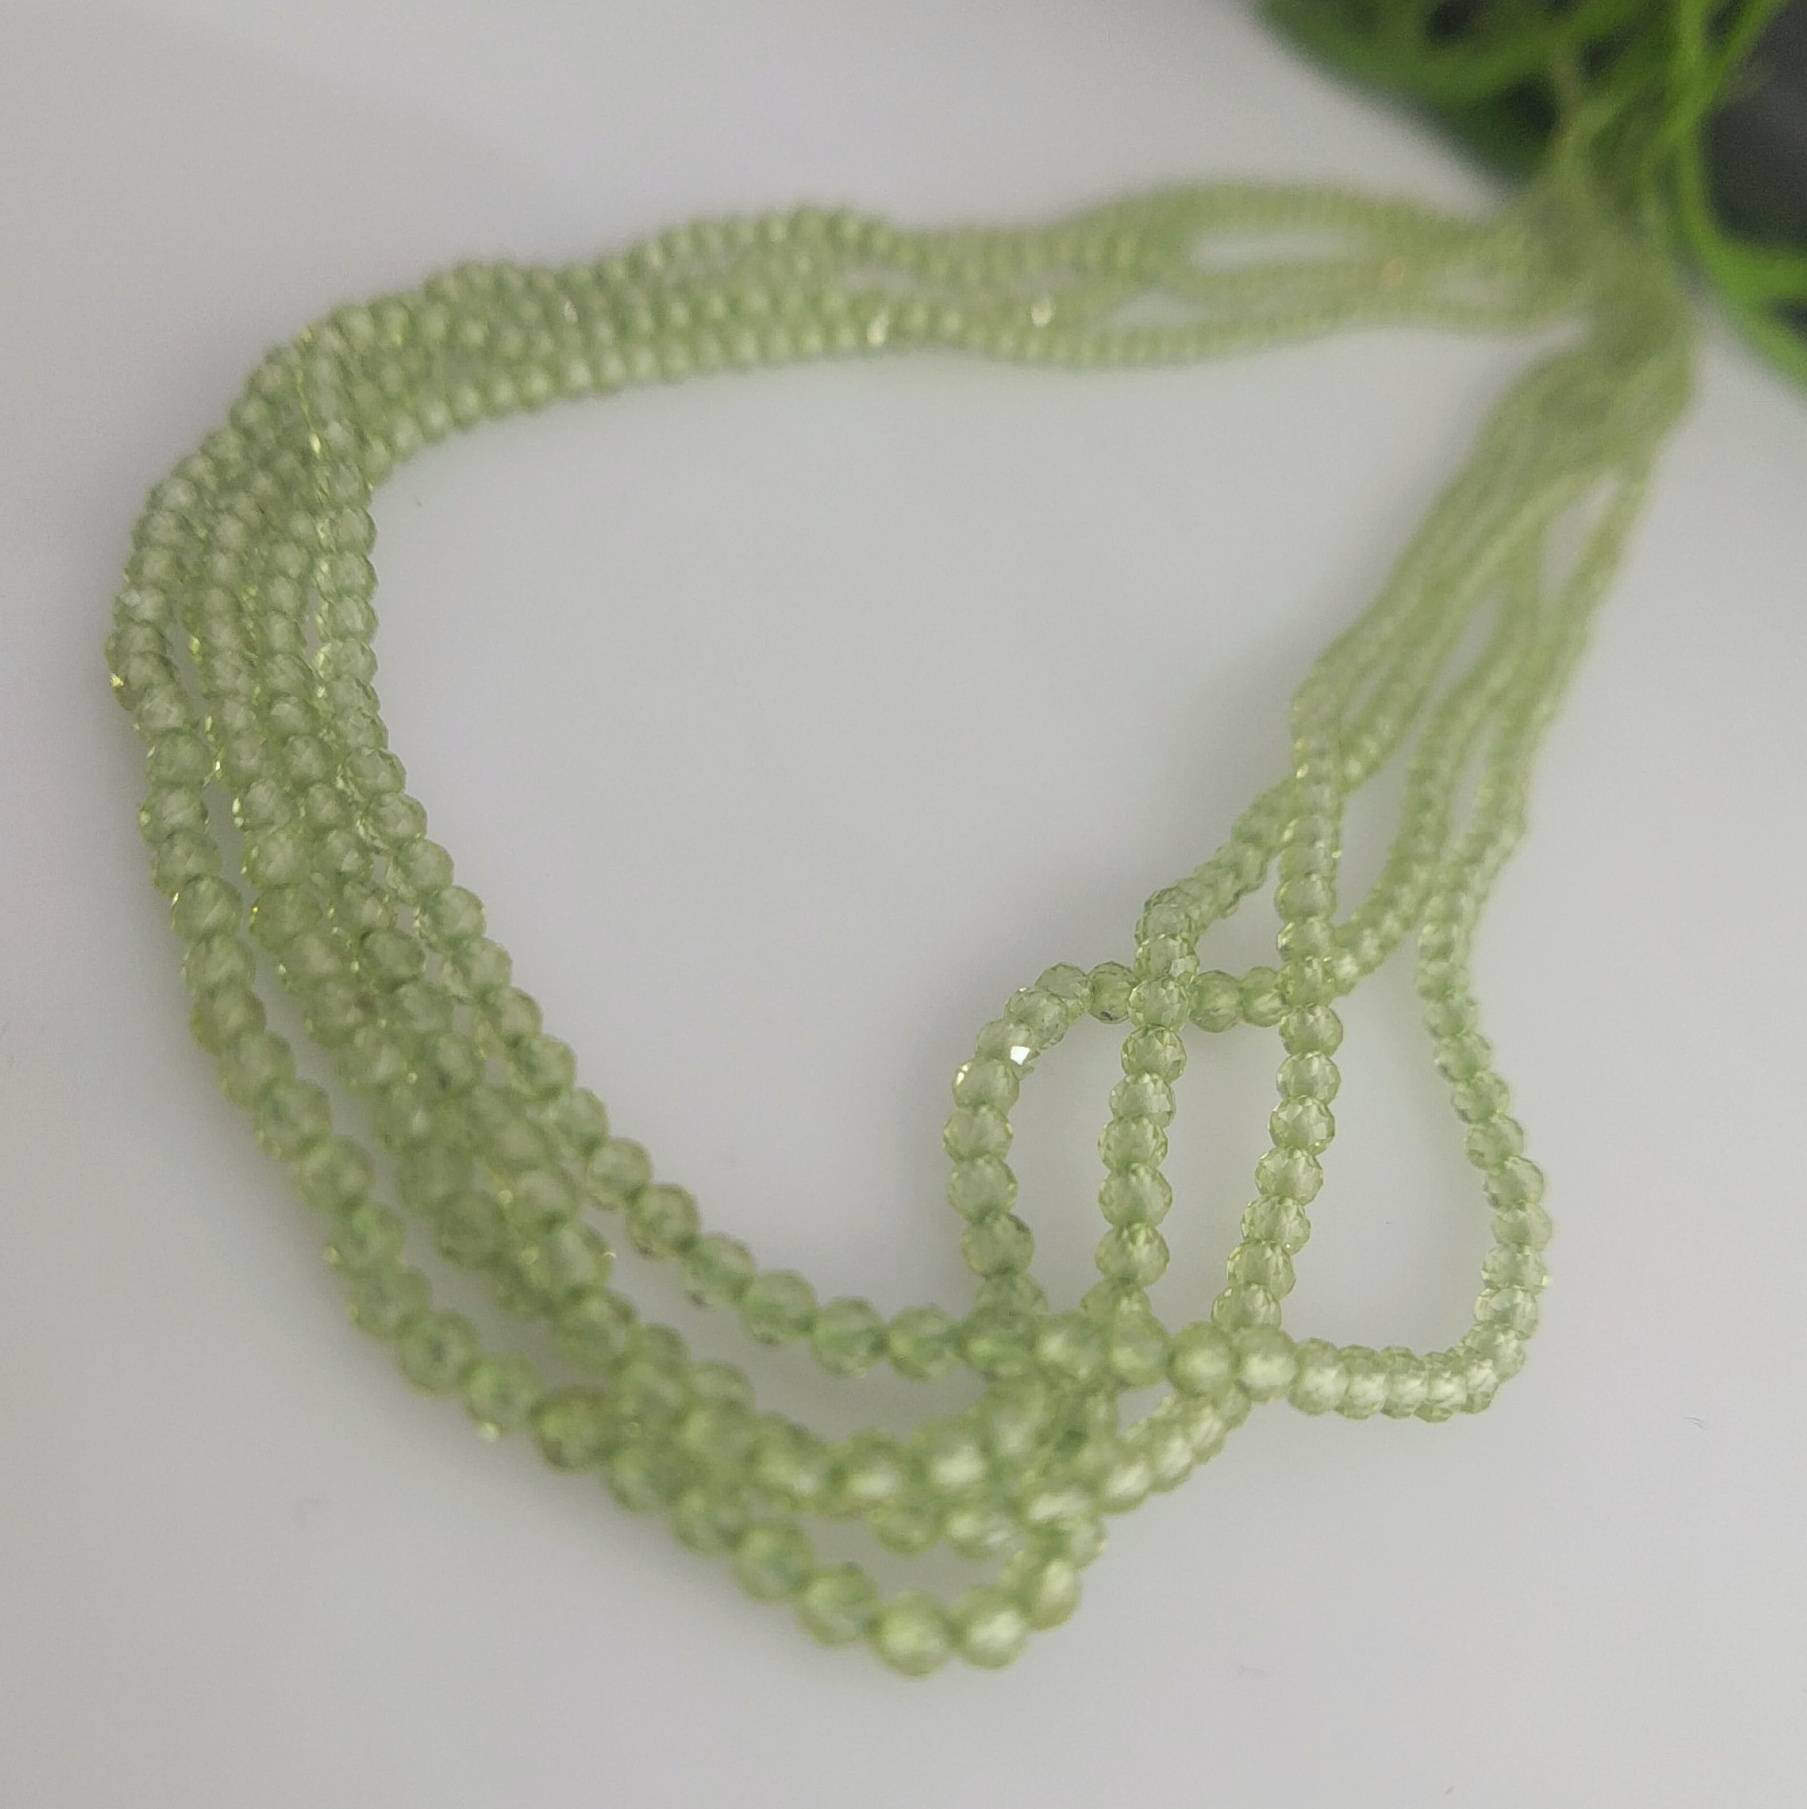 Strand 10 Peridot Green Chalcedony Faceted Oval Shape Tumble 18x12 to15x12  MM Approx Finest Quality Wholesale Price New Arrival 1 pme